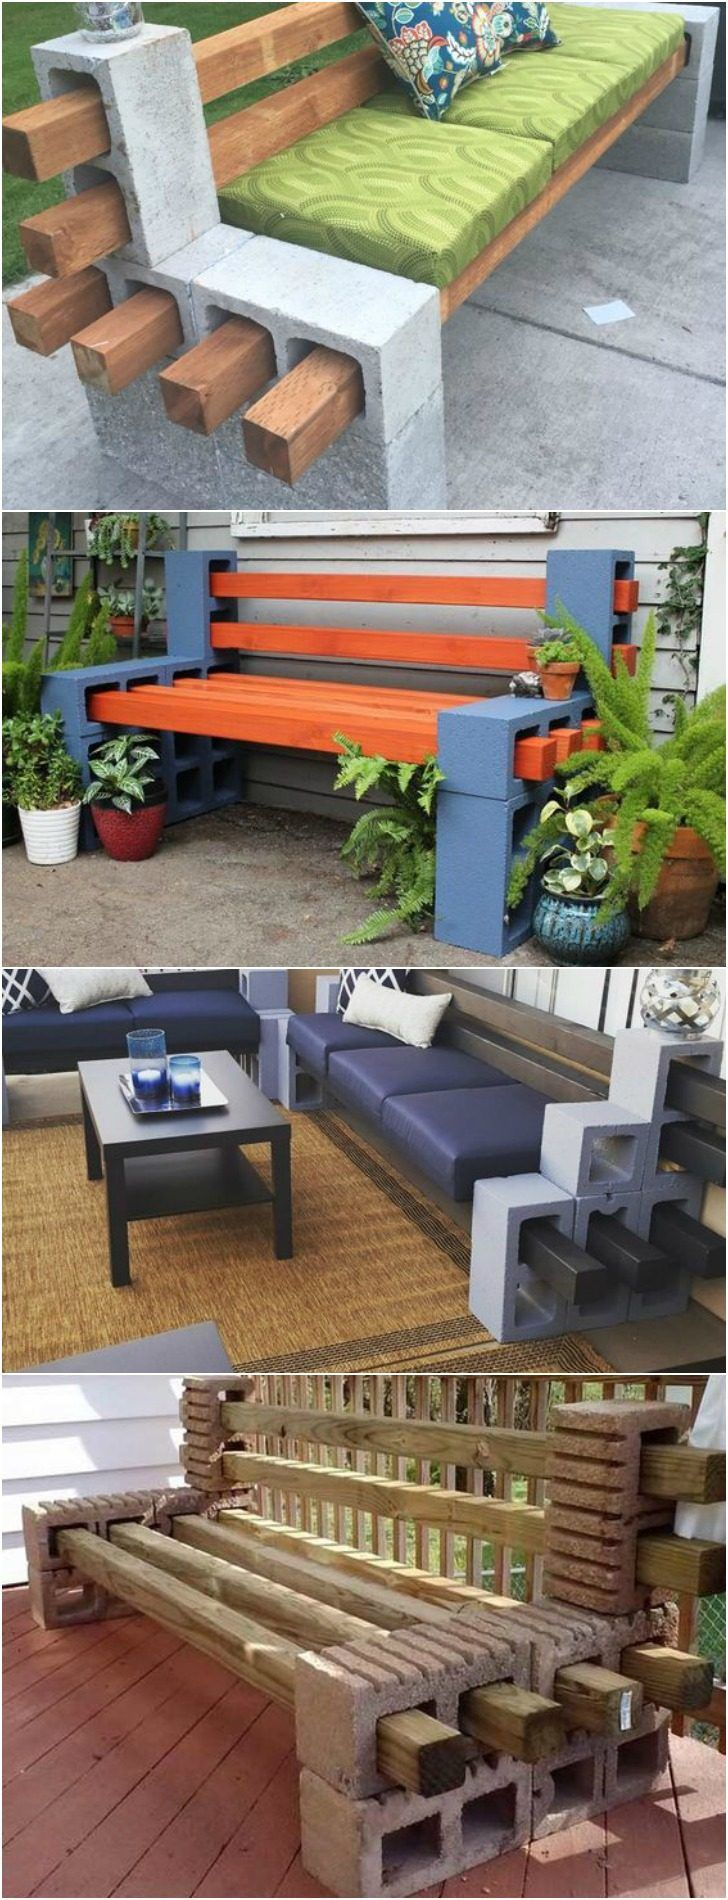 Design Cinder Block Bench how to make a bench from cinder blocks 10 amazing ideas inspire you block and backyard